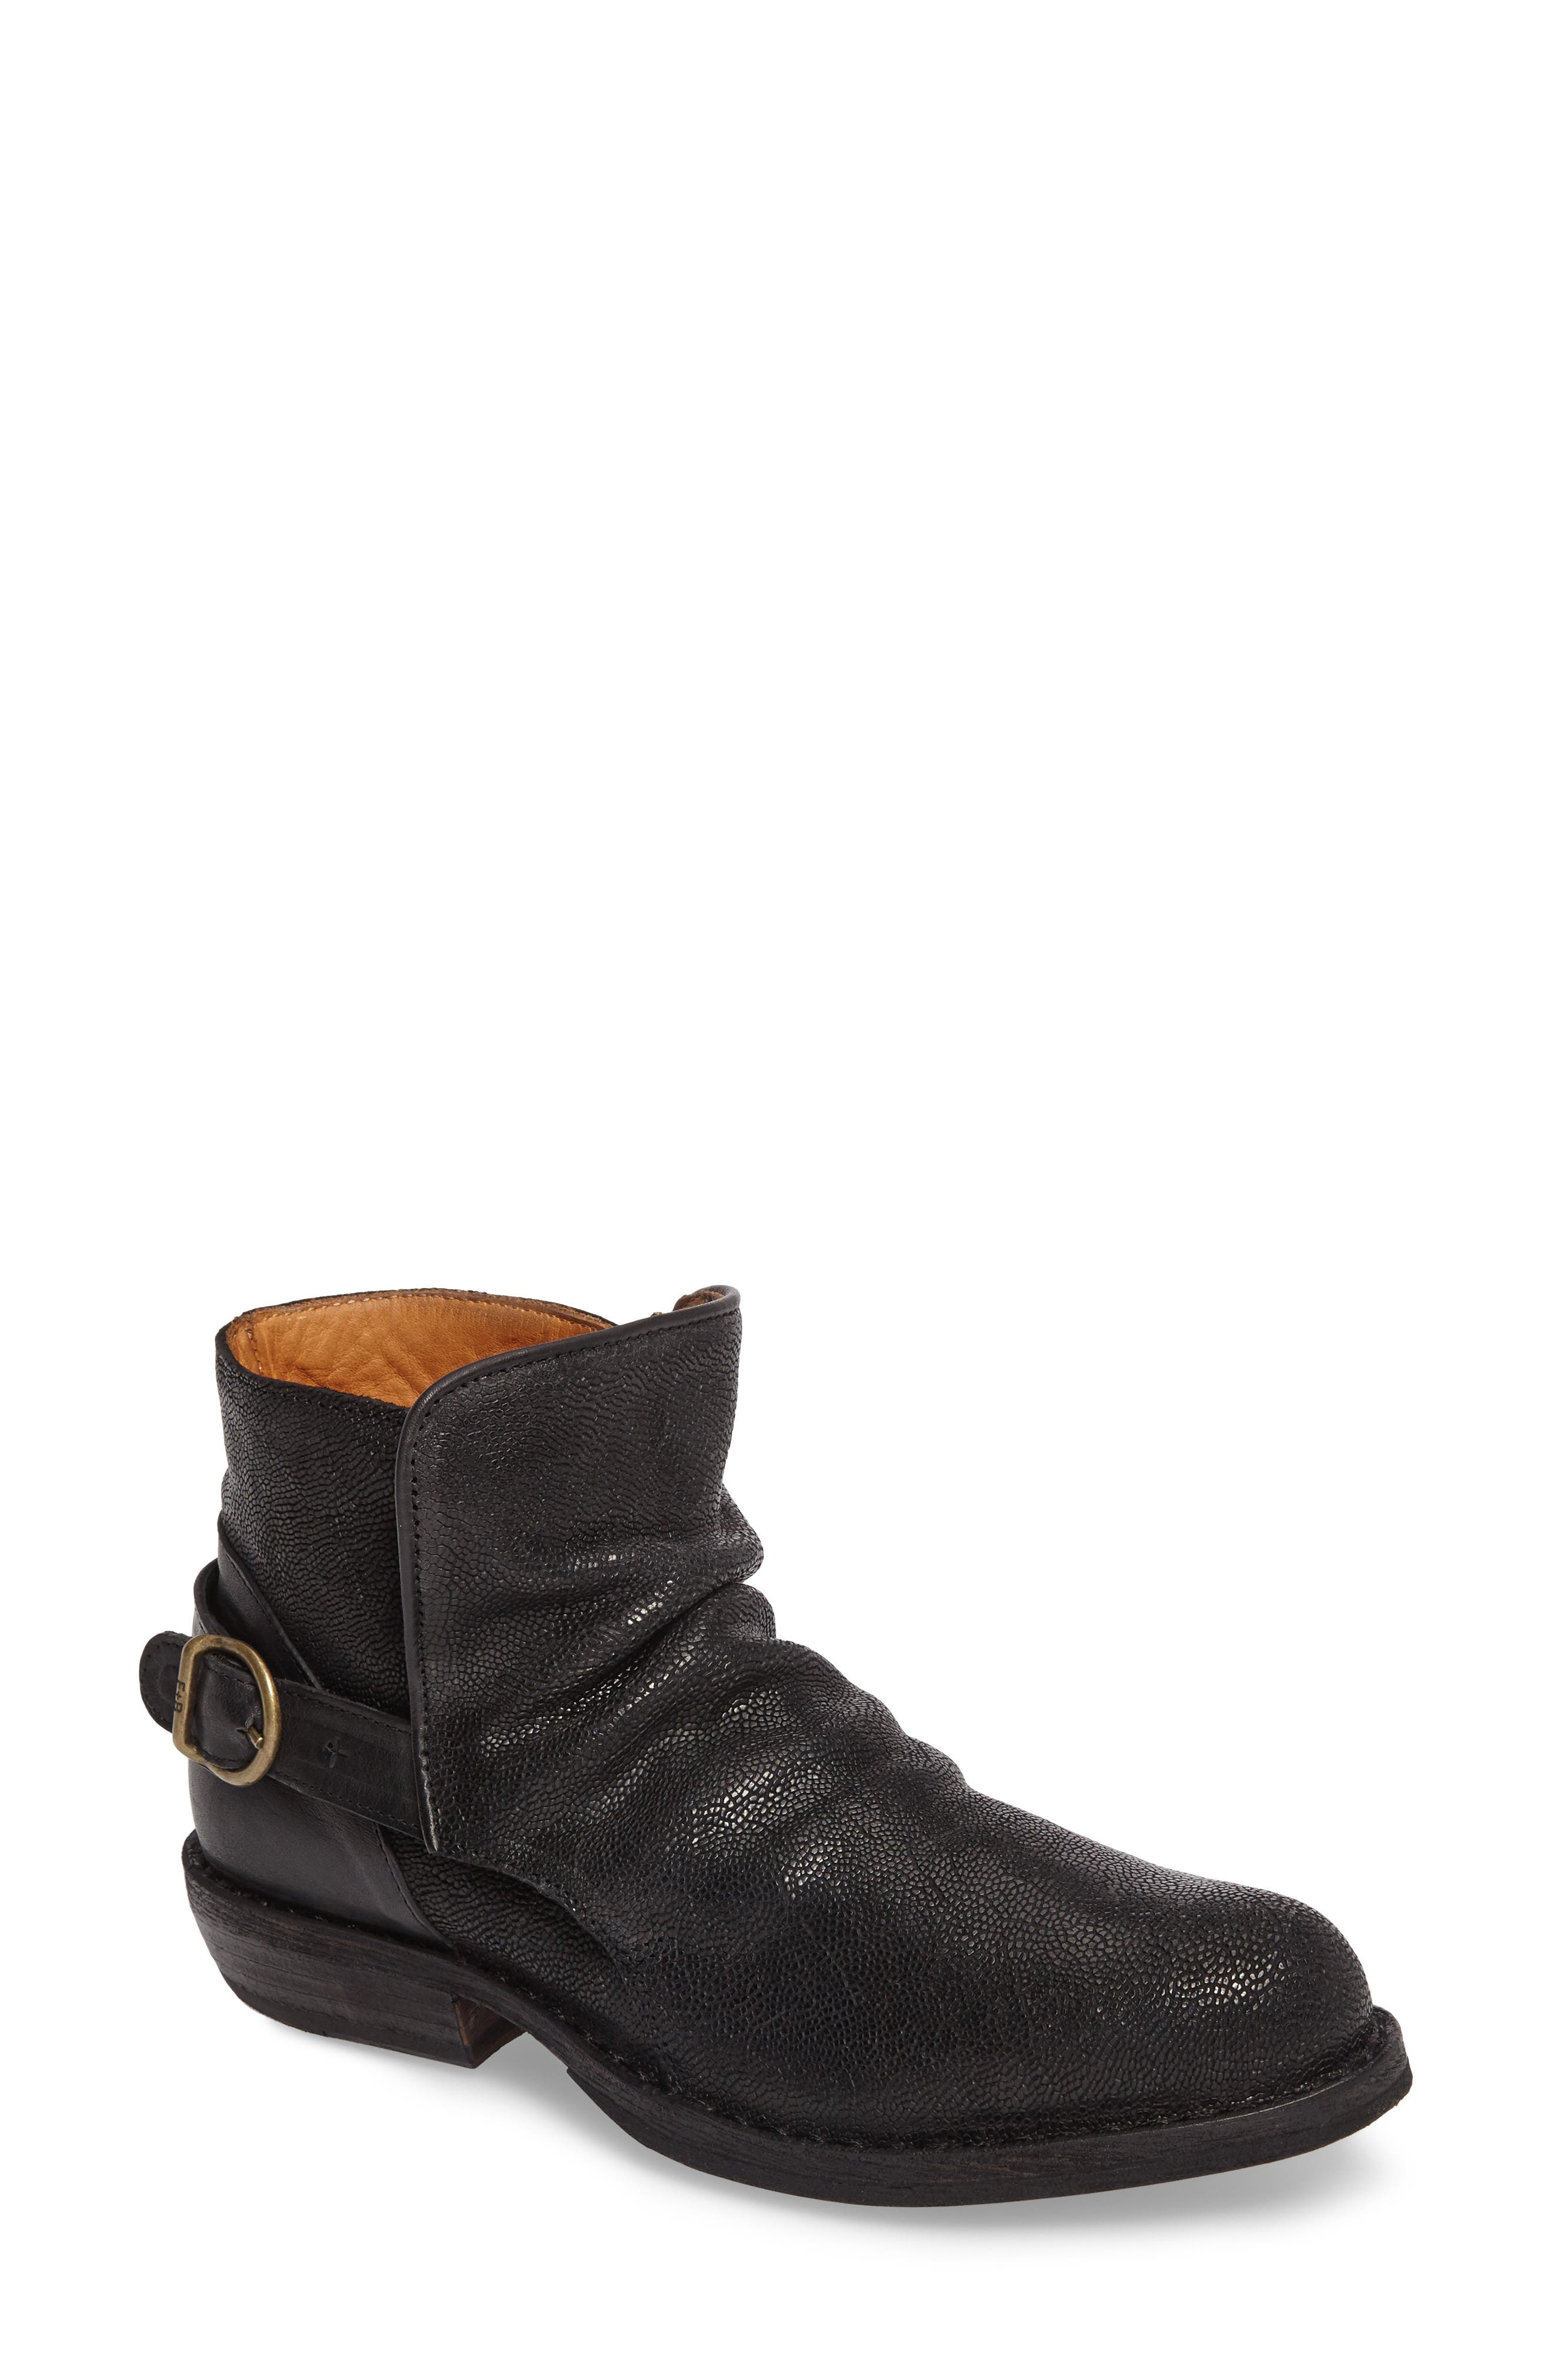 'Carol' Ankle Boot,                             Main thumbnail 1, color,                             002